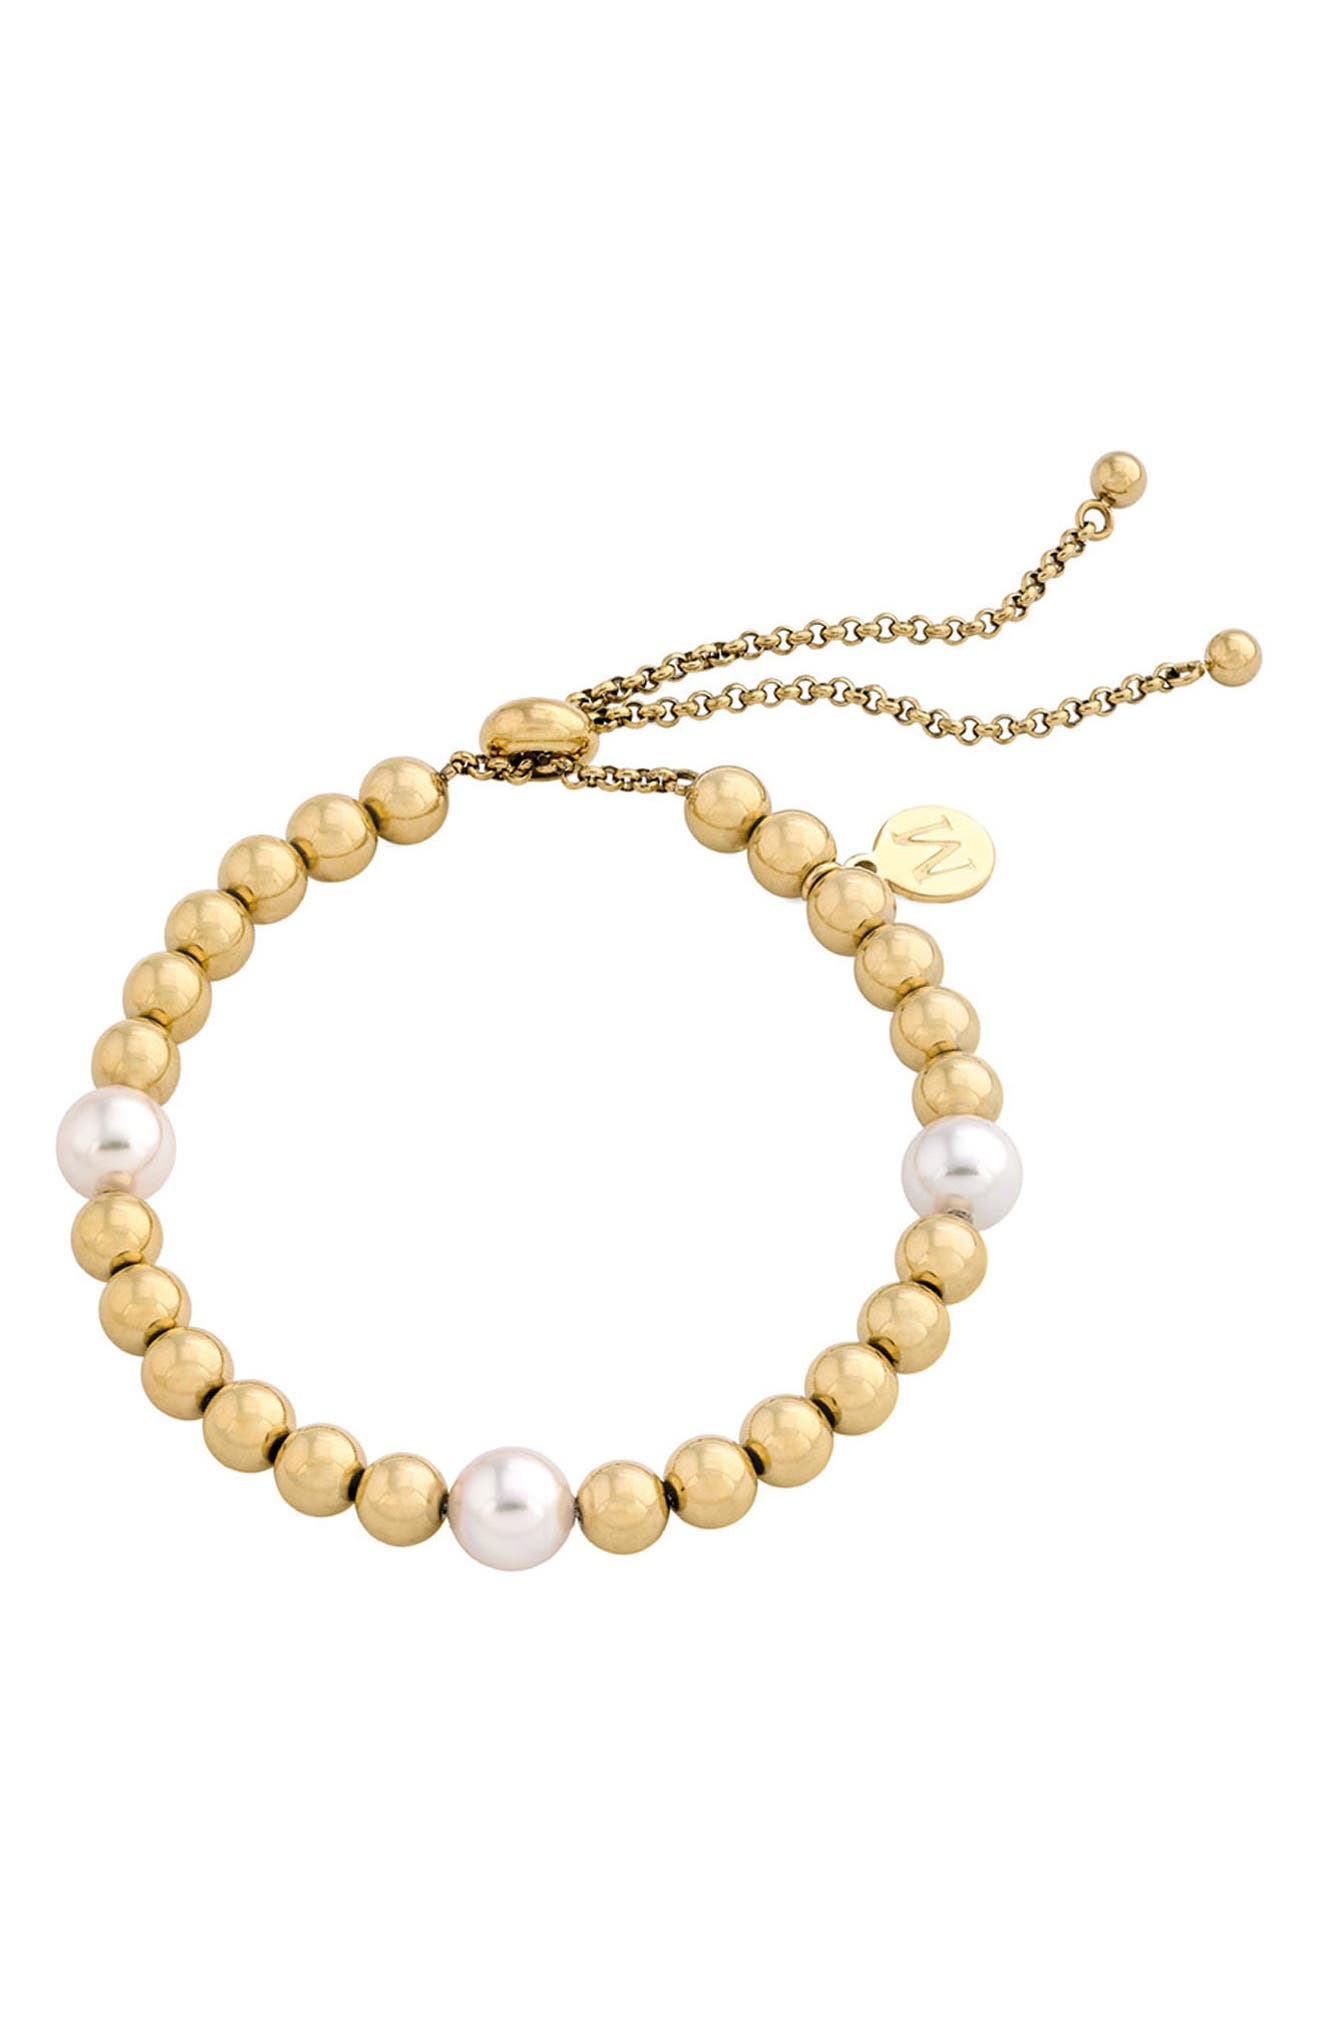 Simulated Pearl & Bead Bracelet,                             Main thumbnail 1, color,                             WHITE/ GOLD